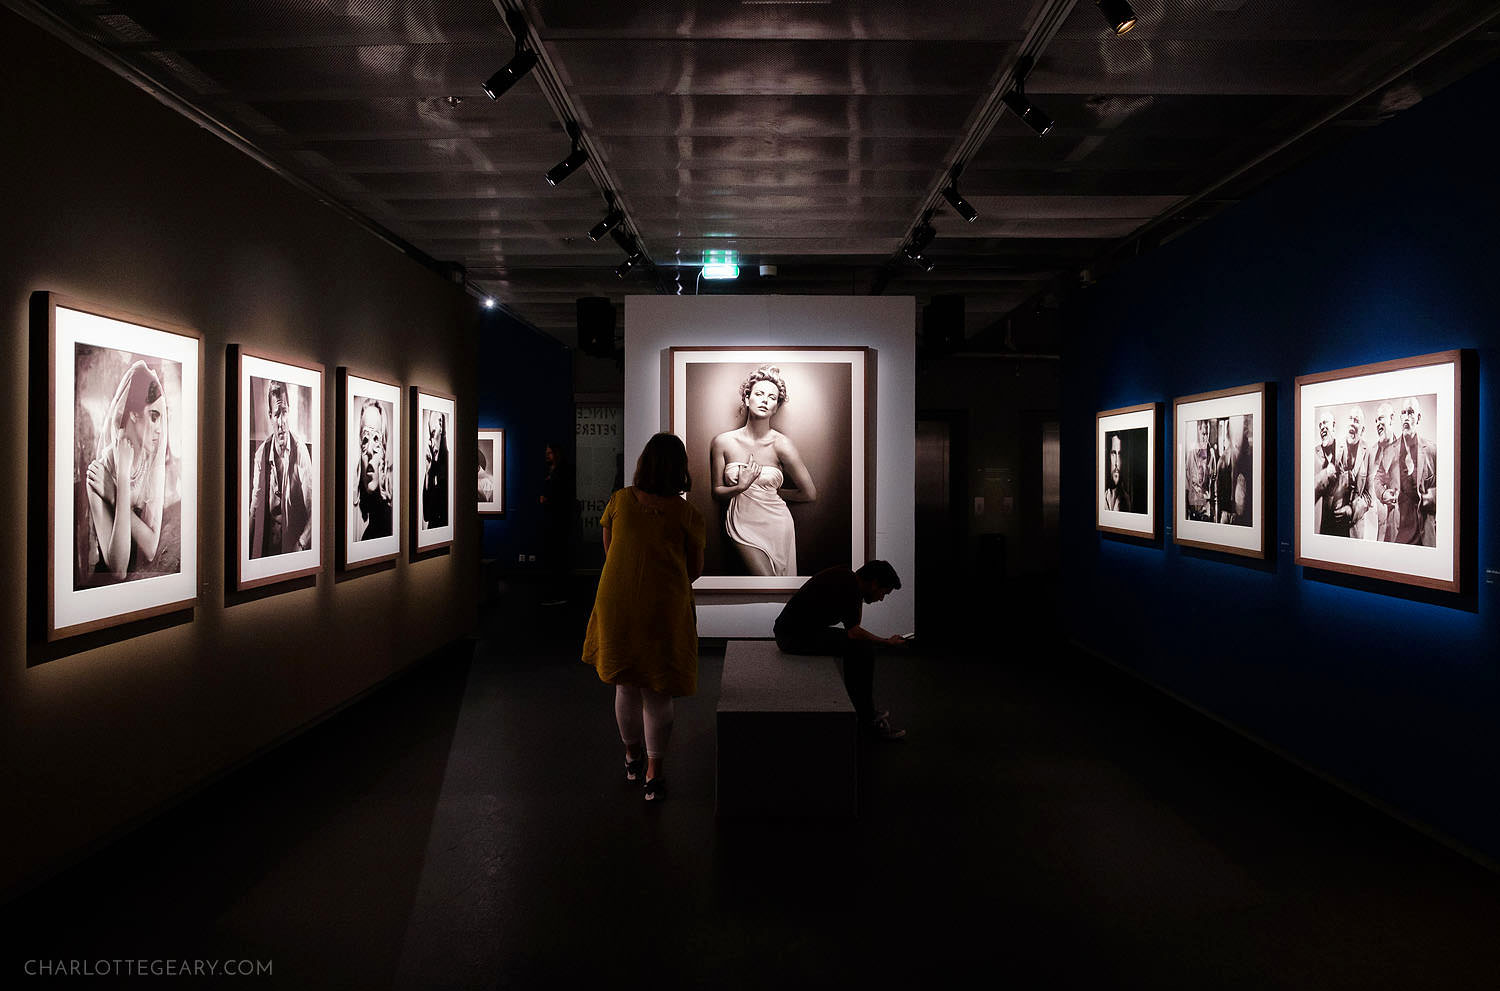 Fotografiska, a phenomenal photography museum in Stockholm